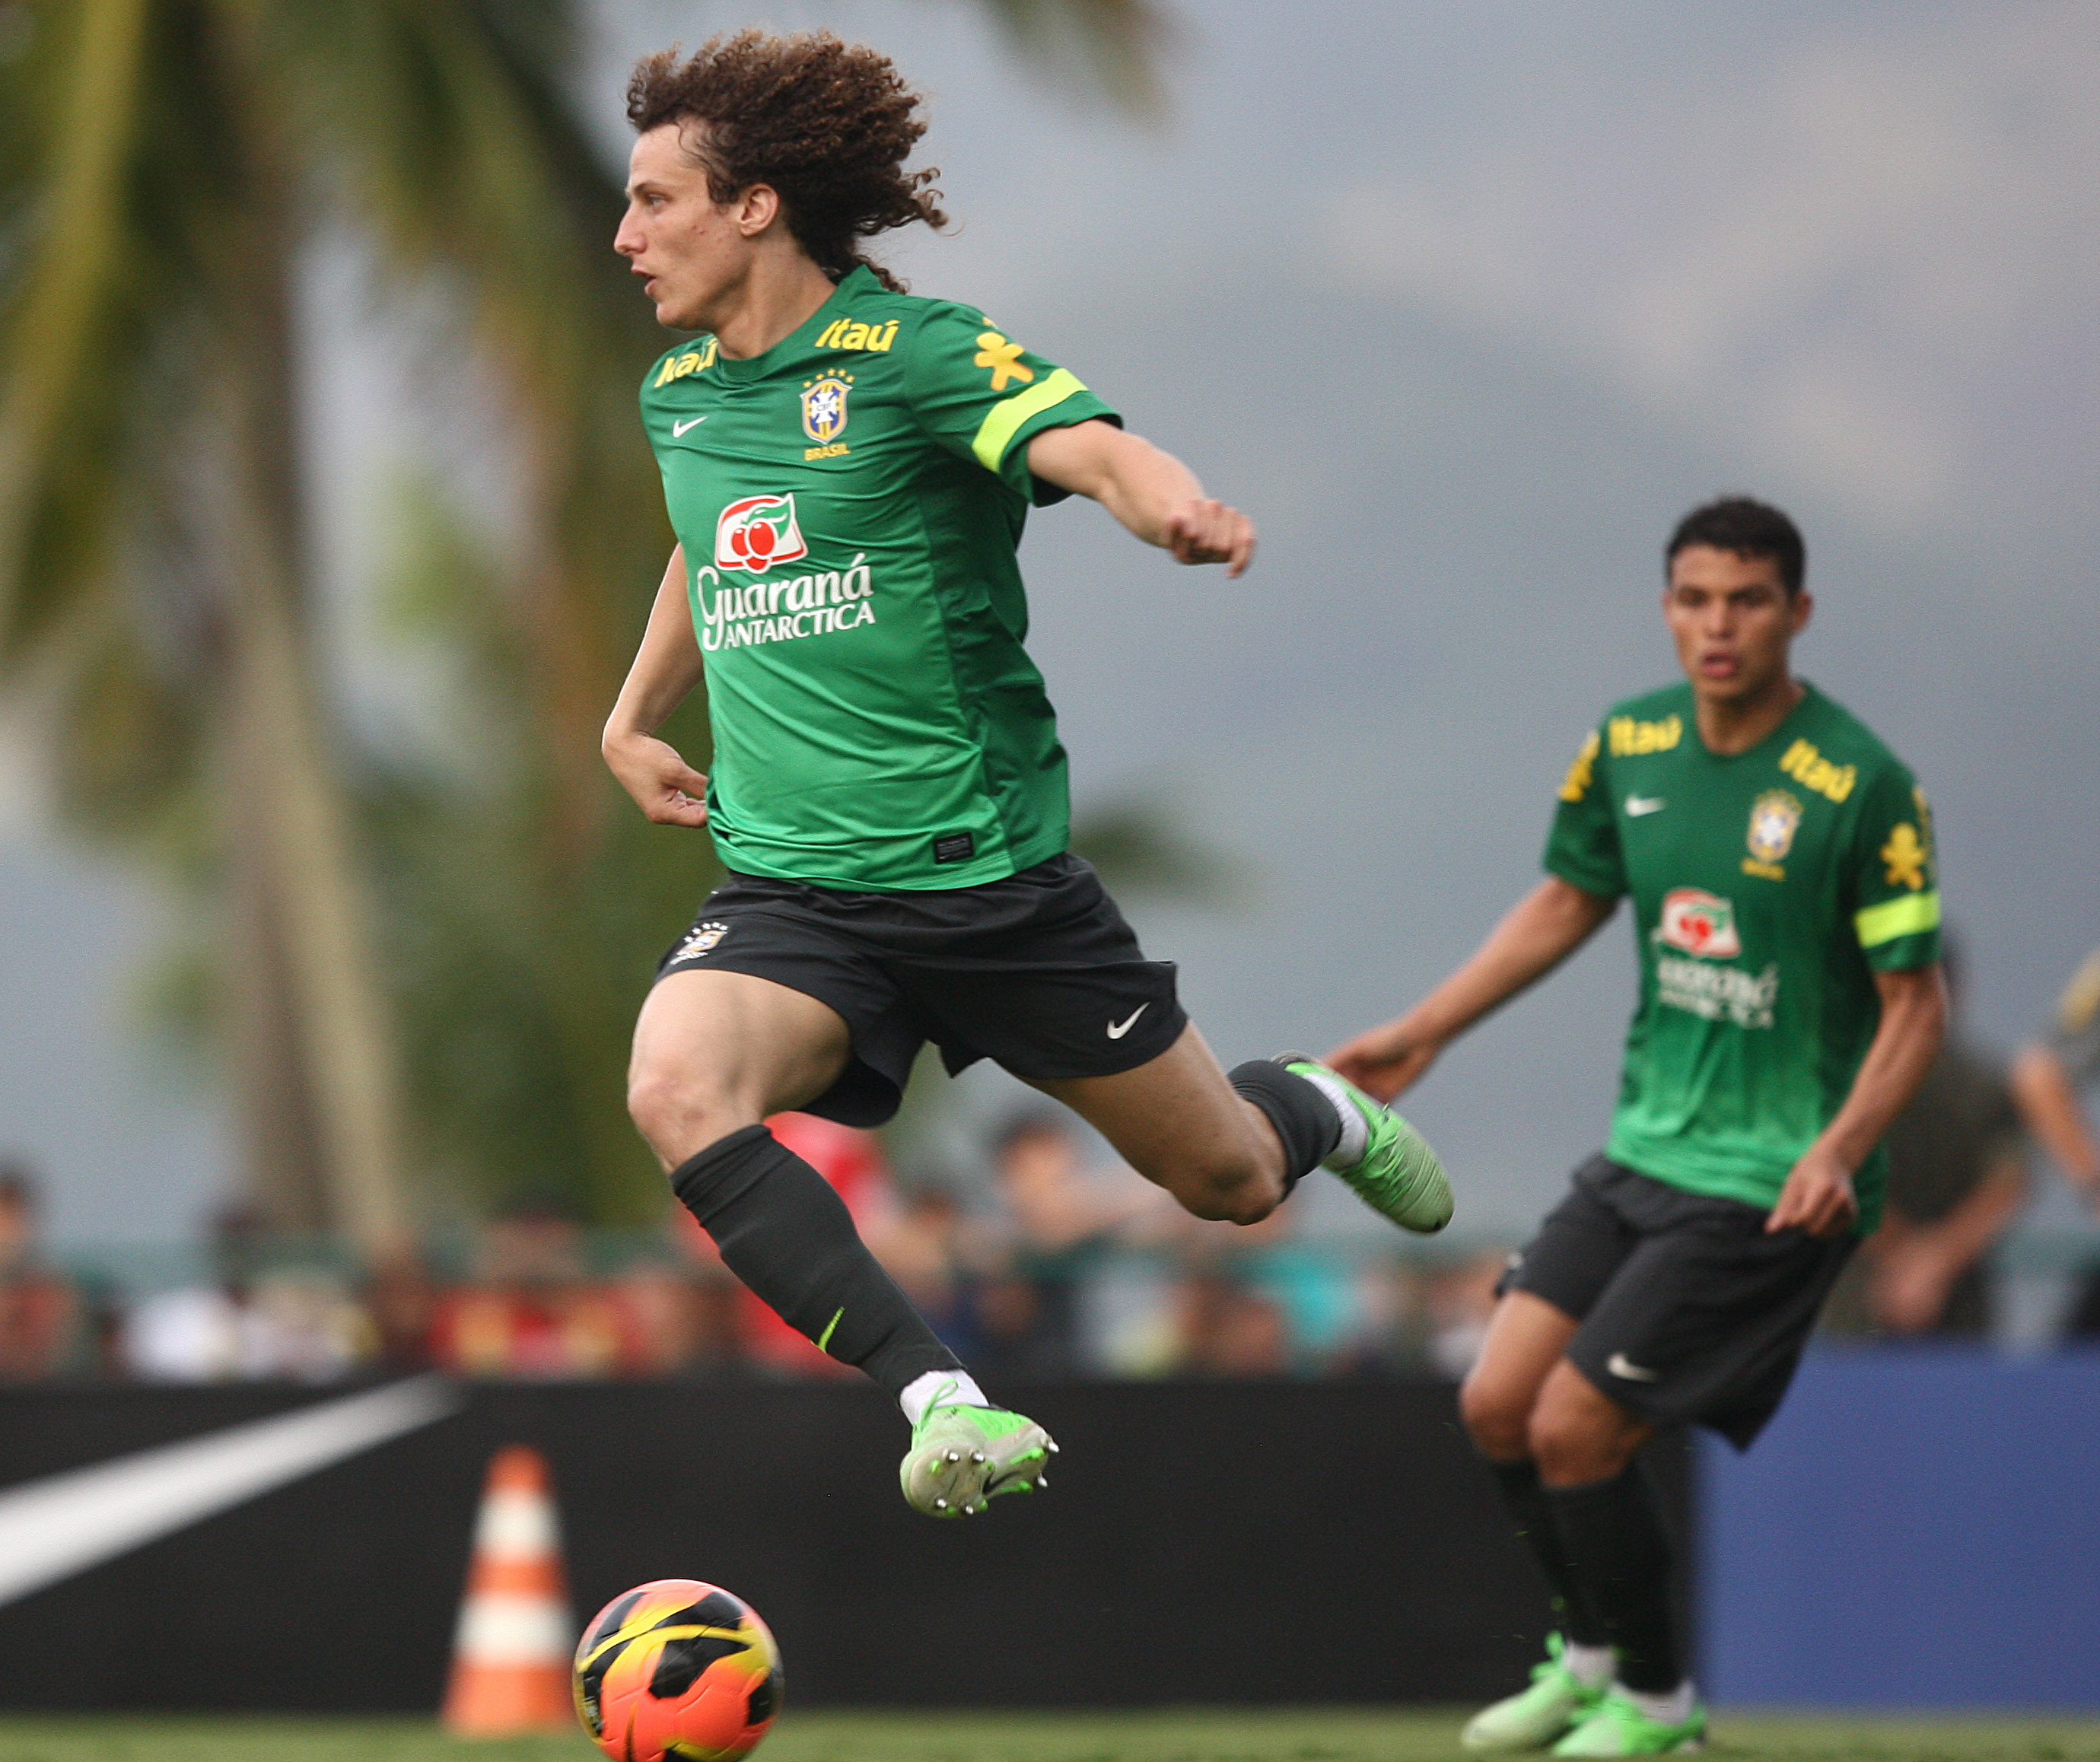 David Luiz in training for Brazil (Mowa Press)